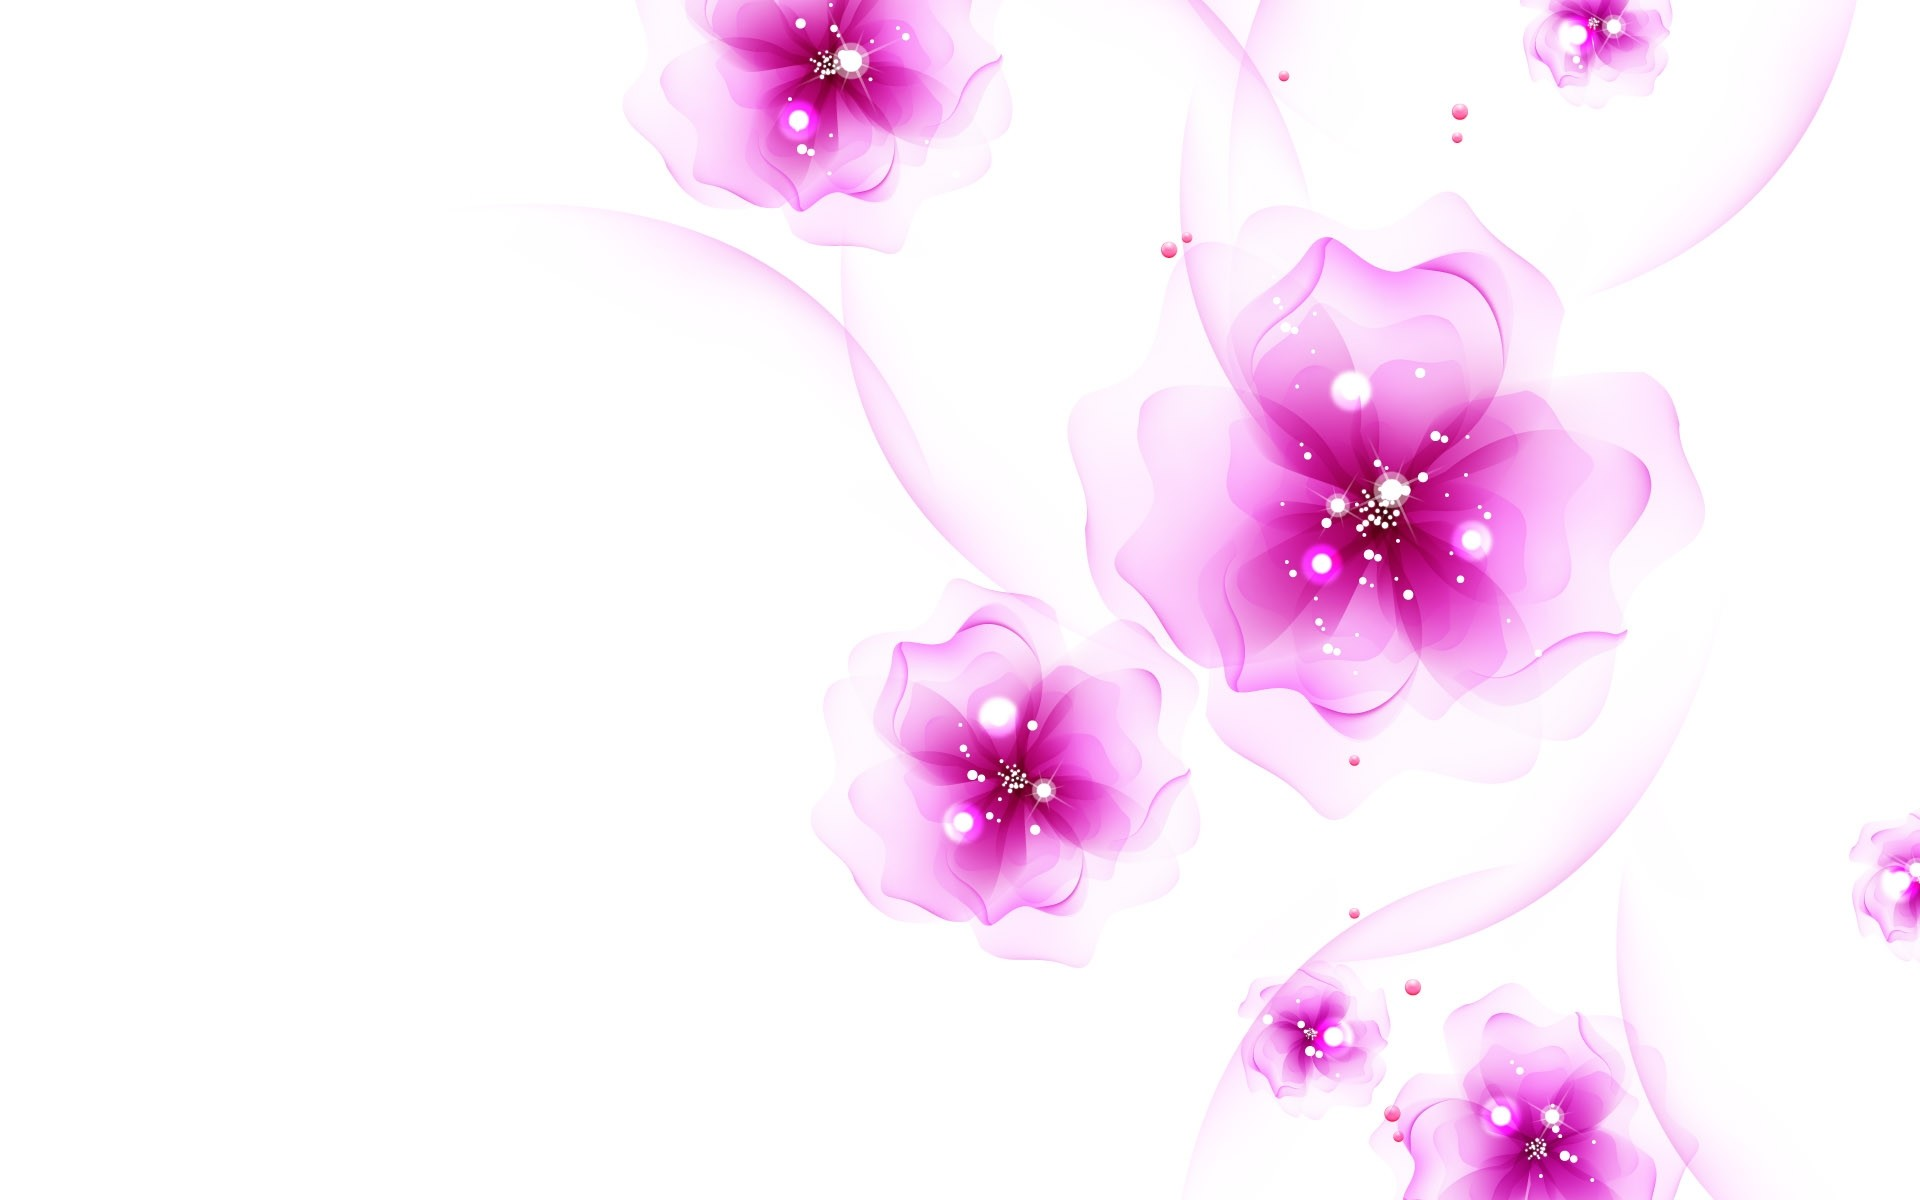 Pink and White Wallpaper